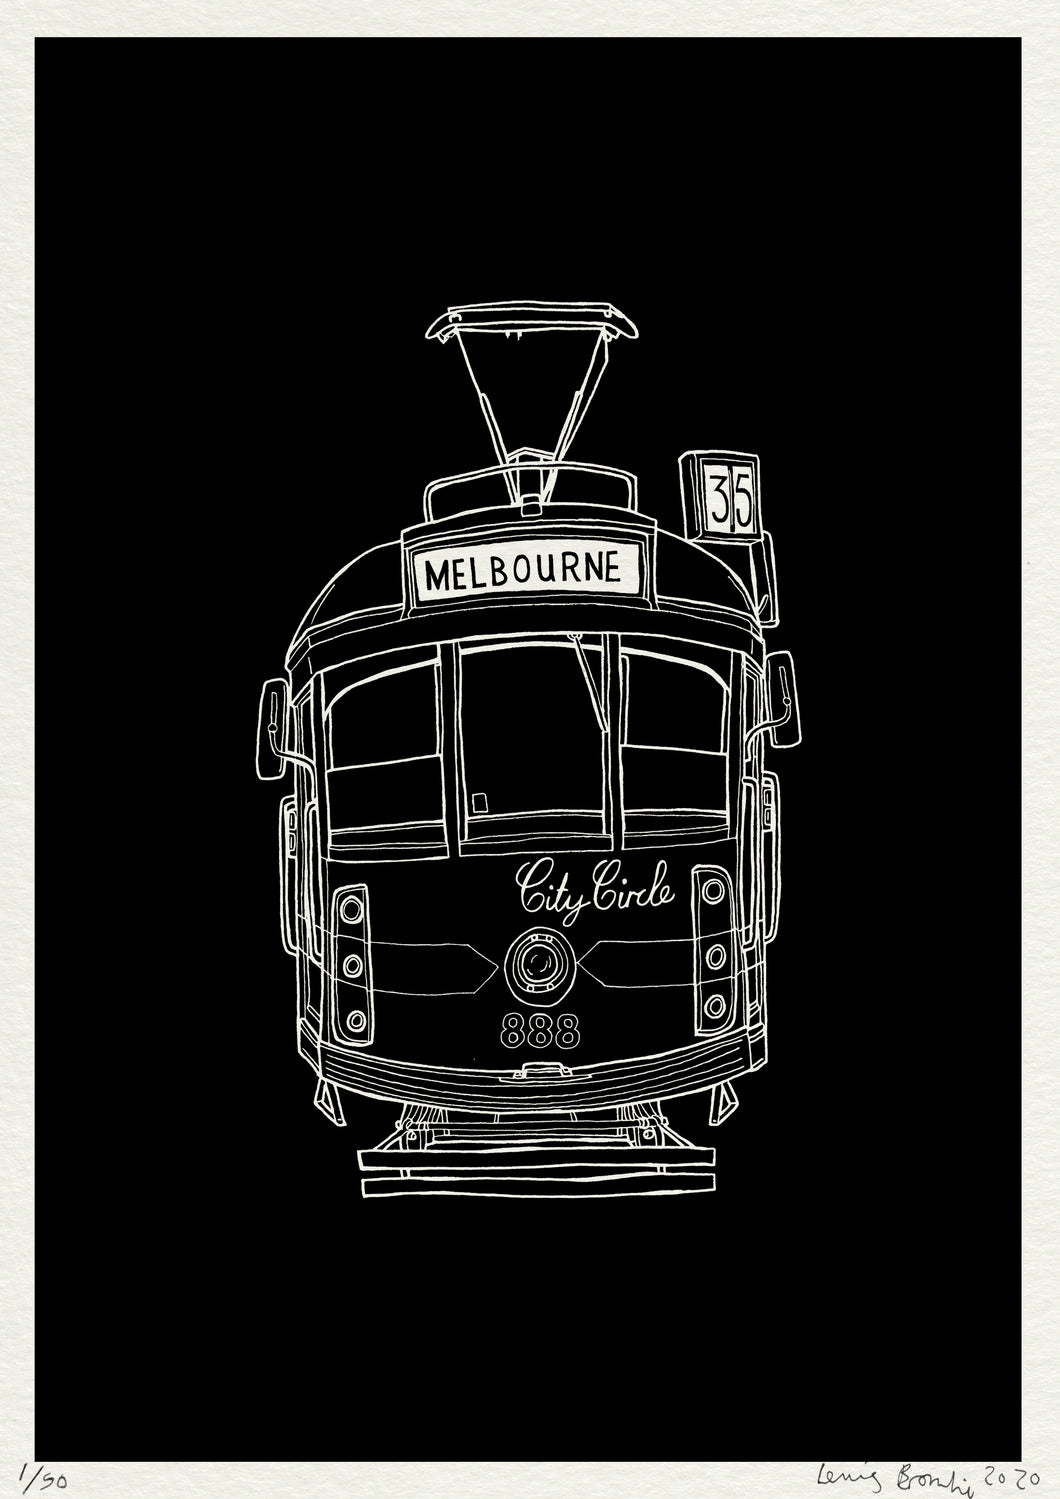 Melbourne Tram Print - Night